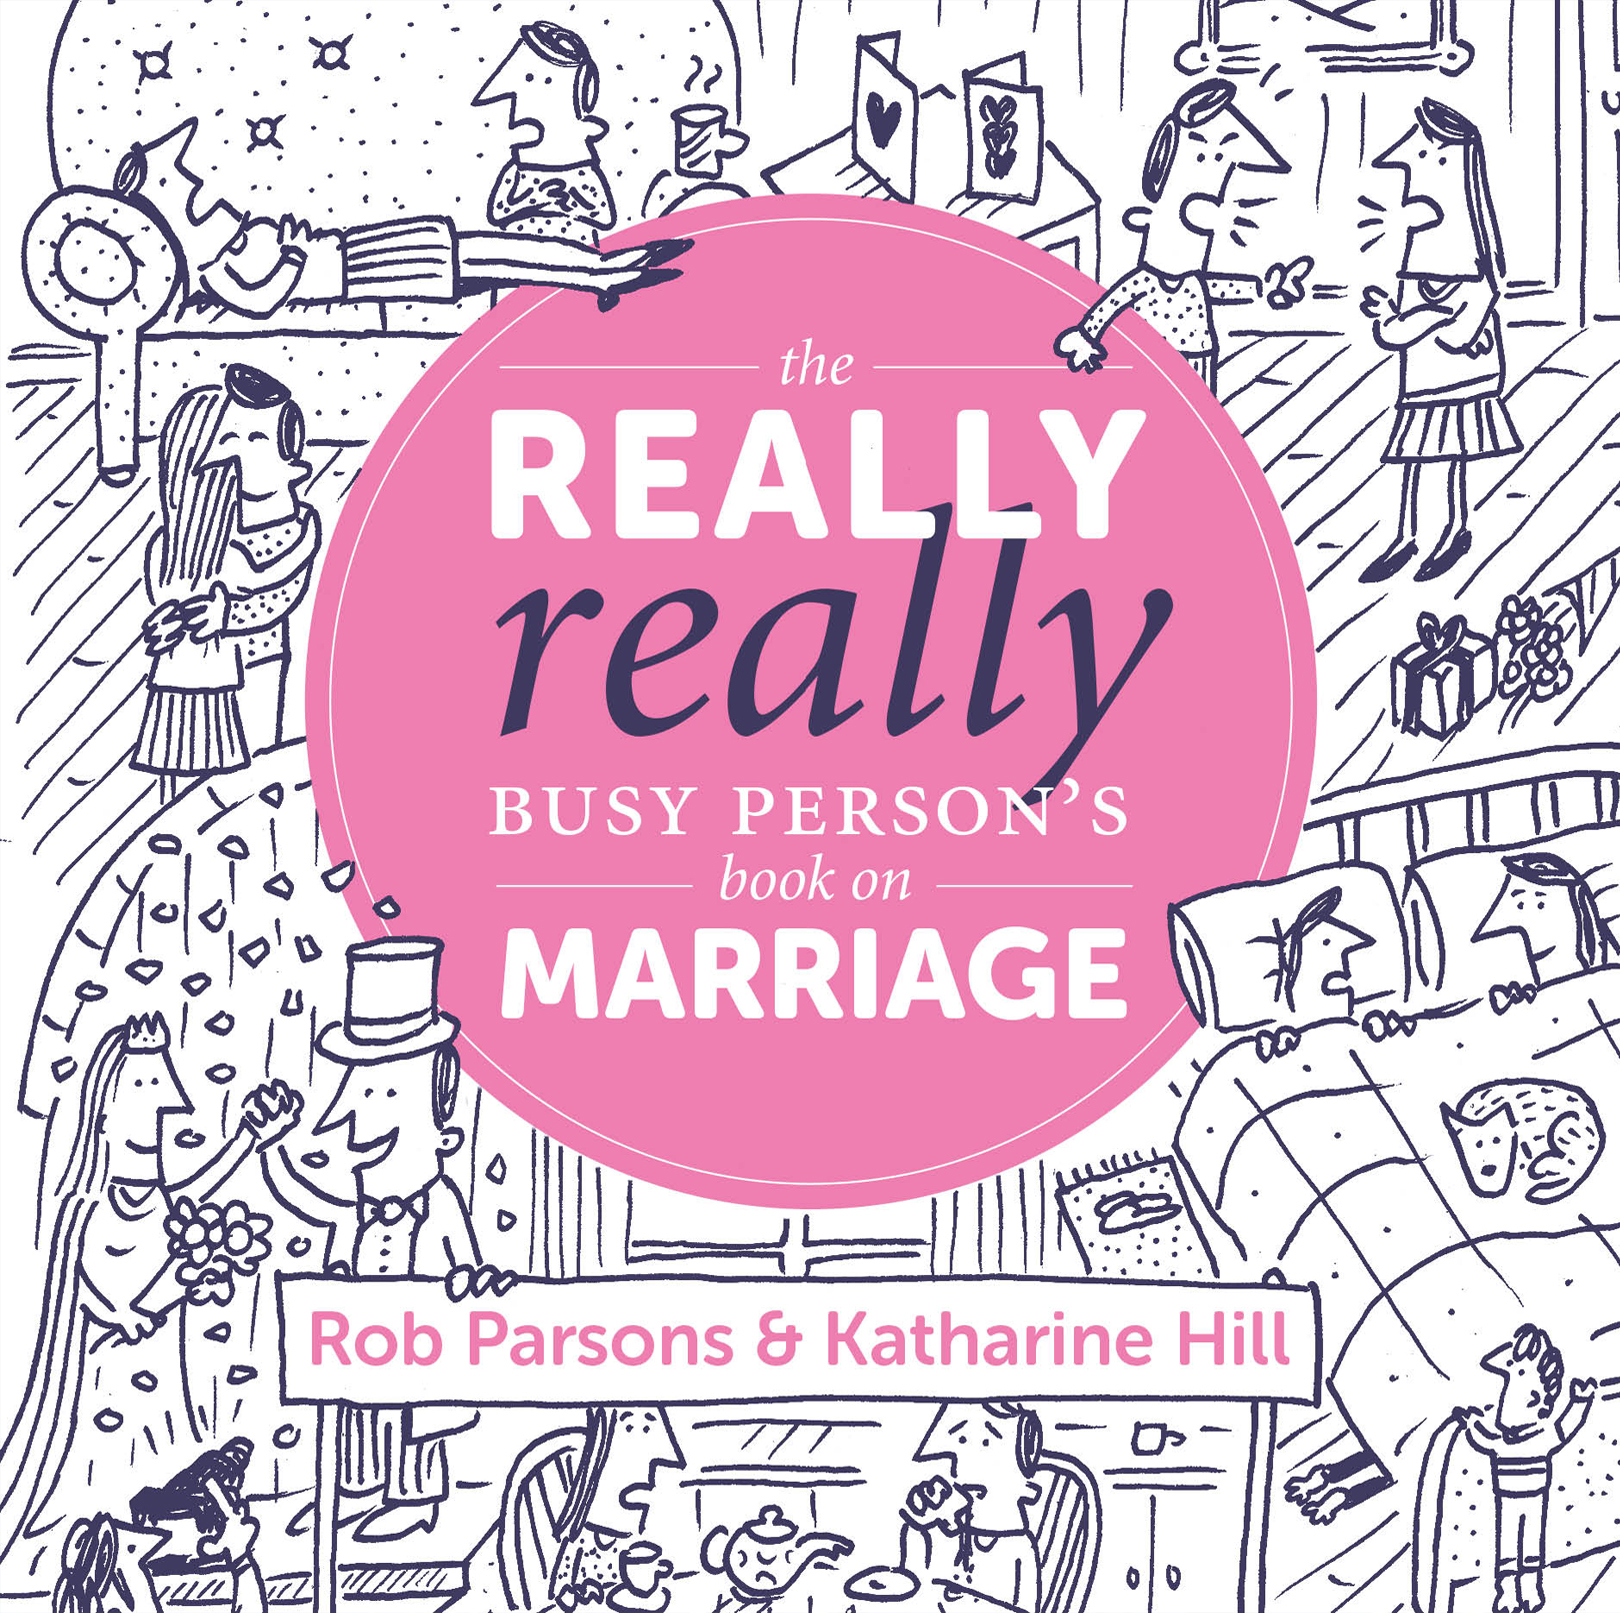 The Really, Really Busy Person's Book on Marriage